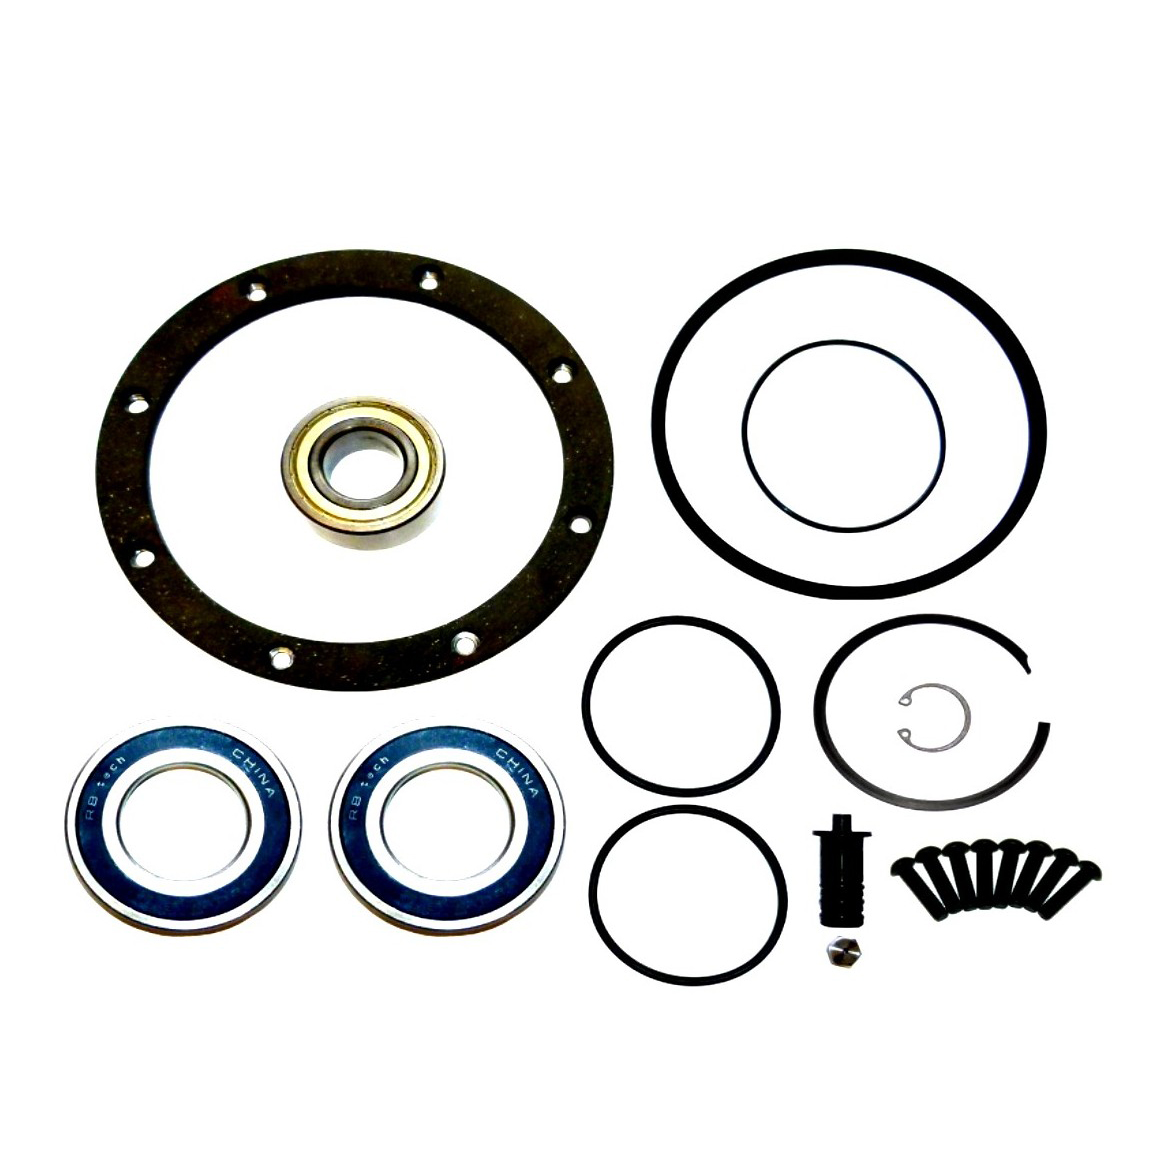 Fan Clutch Kits